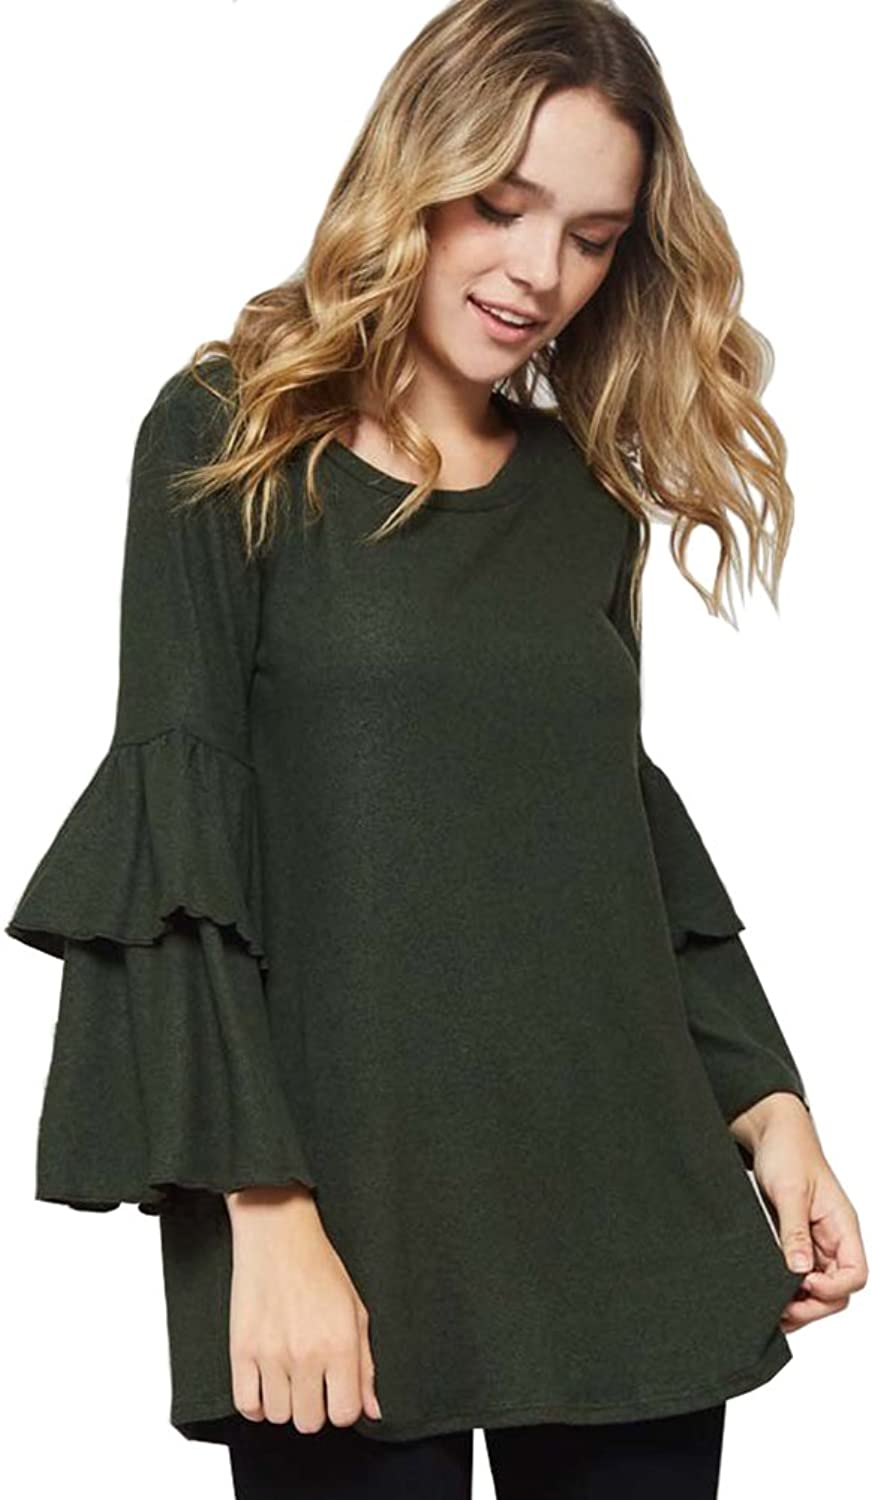 12 Ami Isabella Brushed Knit Ruffle Sleeve Tunic Top  Made in USA